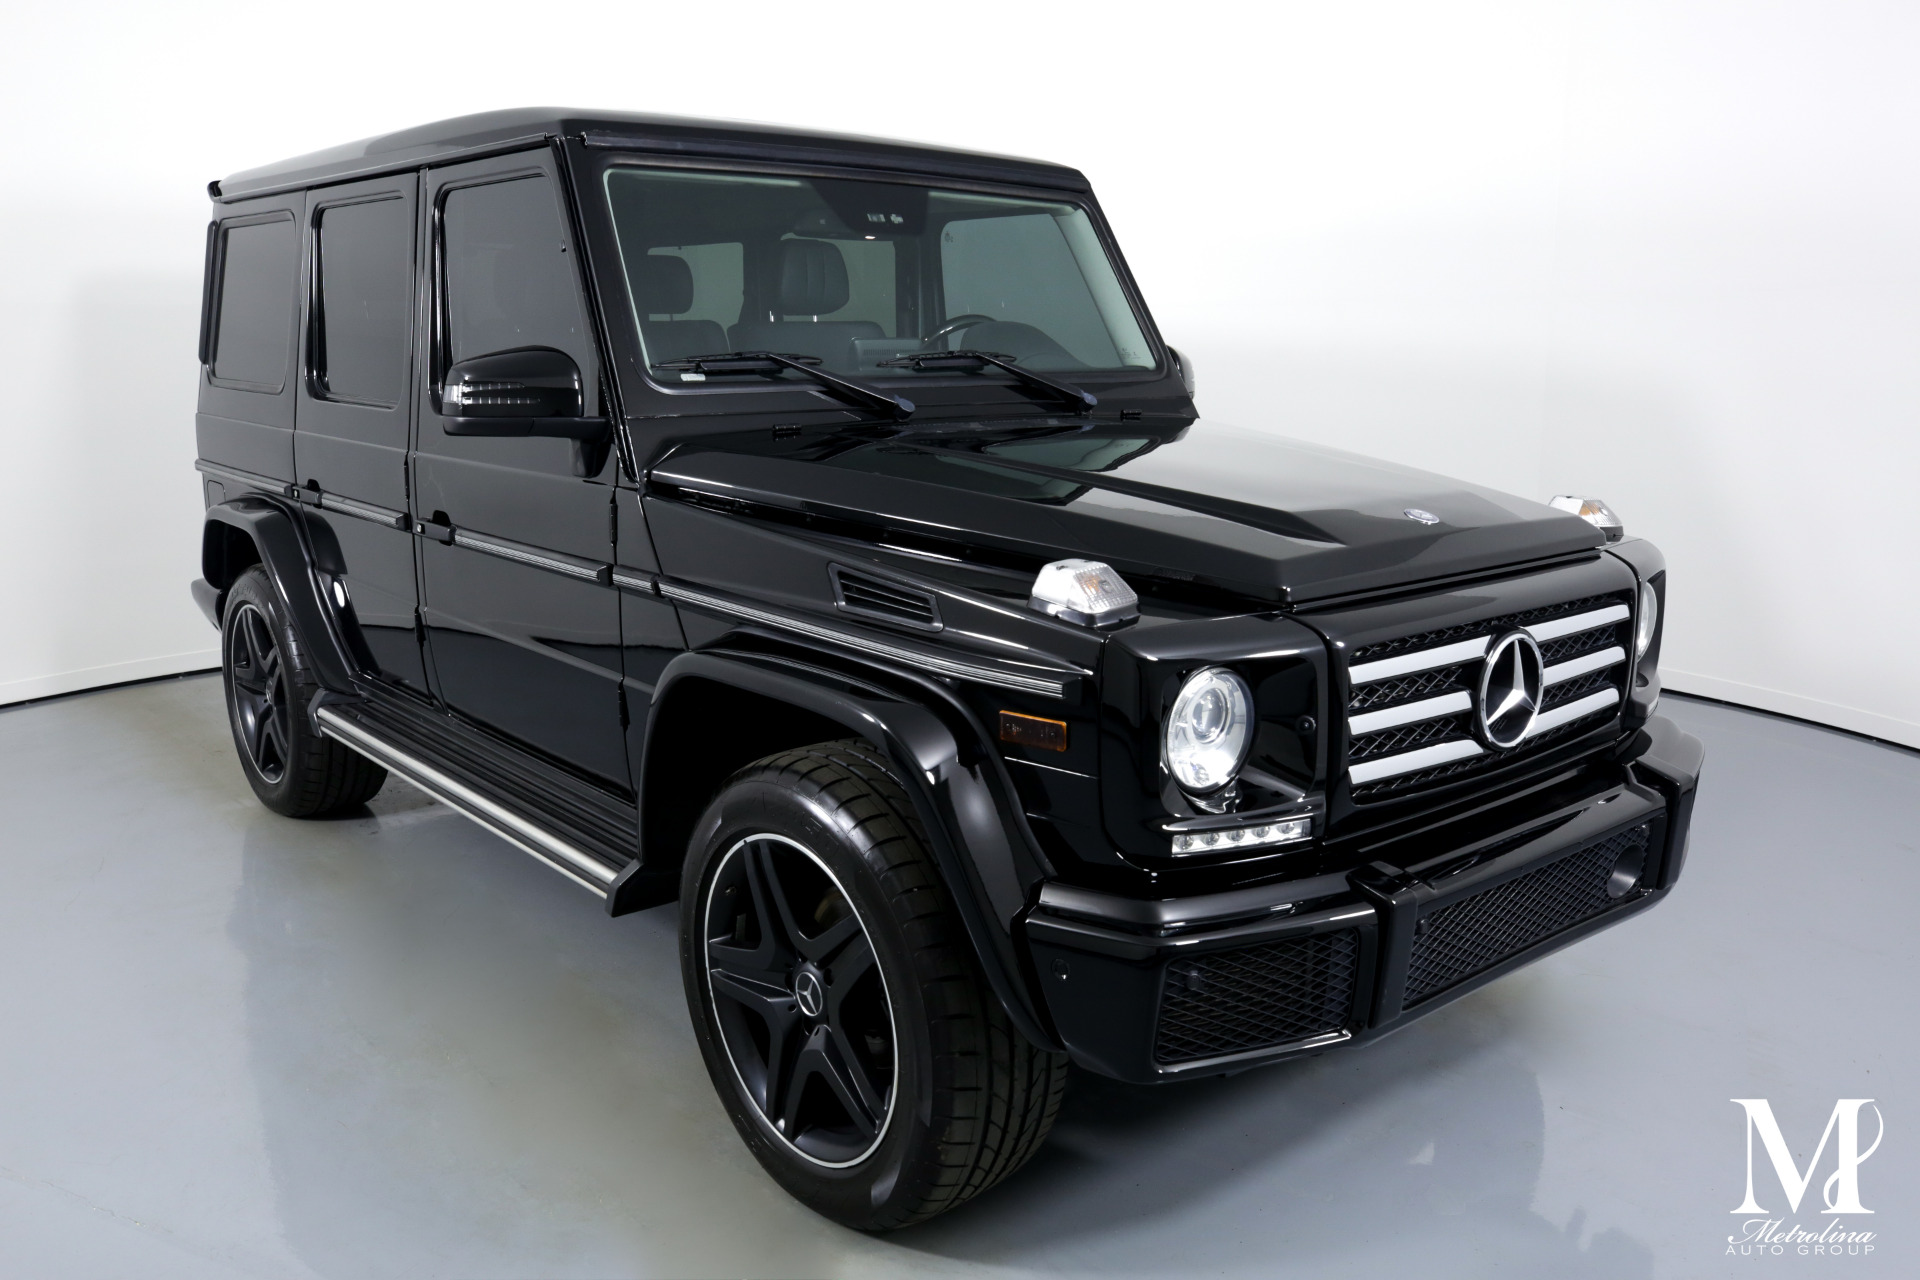 Used 2017 Mercedes-Benz G-Class G 550 for sale $74,996 at Metrolina Auto Group in Charlotte NC 28217 - 2